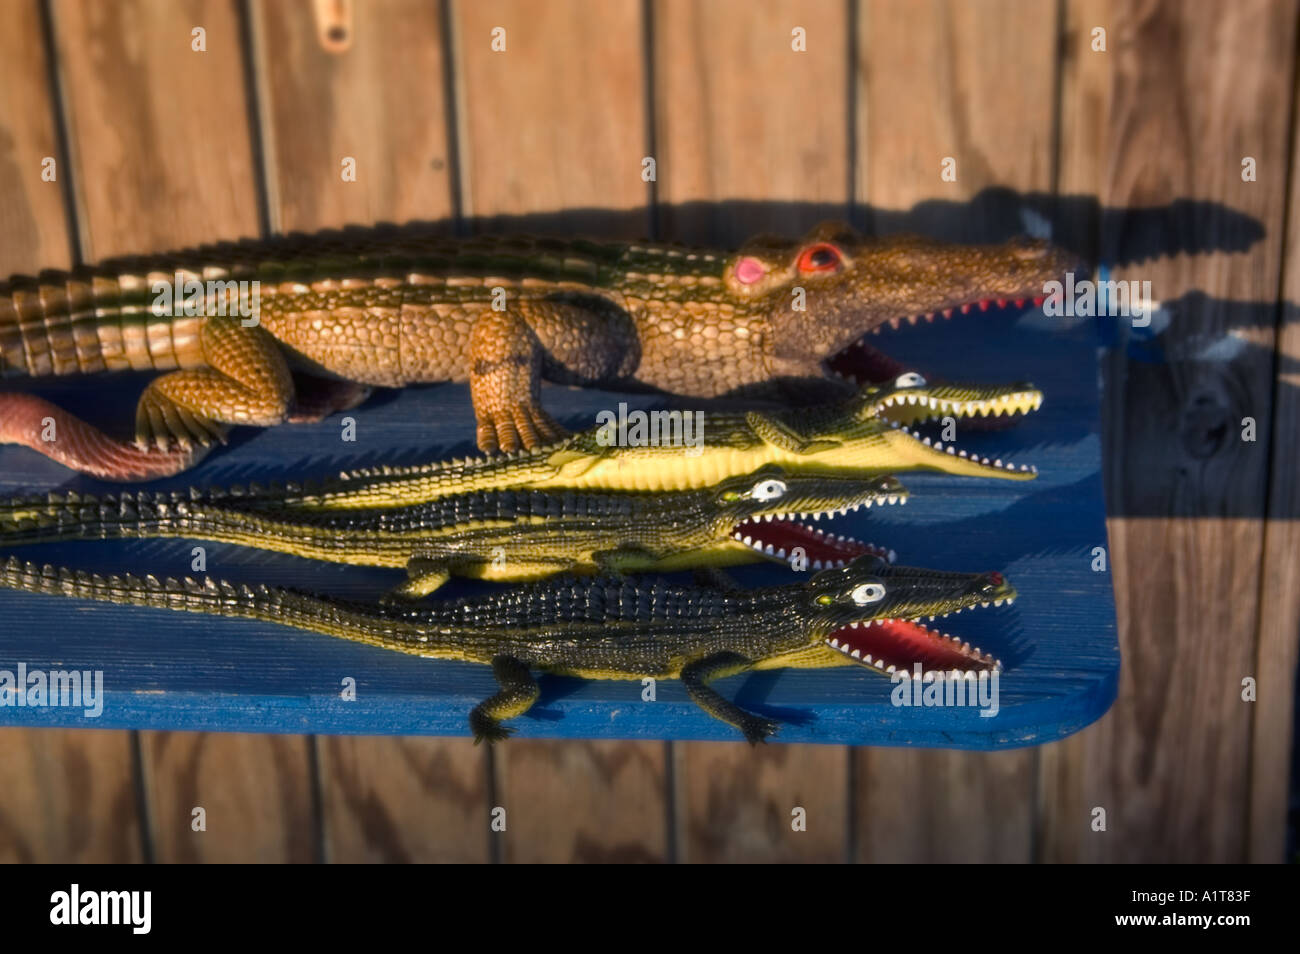 Rubber Alligator Stock Photos & Rubber Alligator Stock Images - Alamy